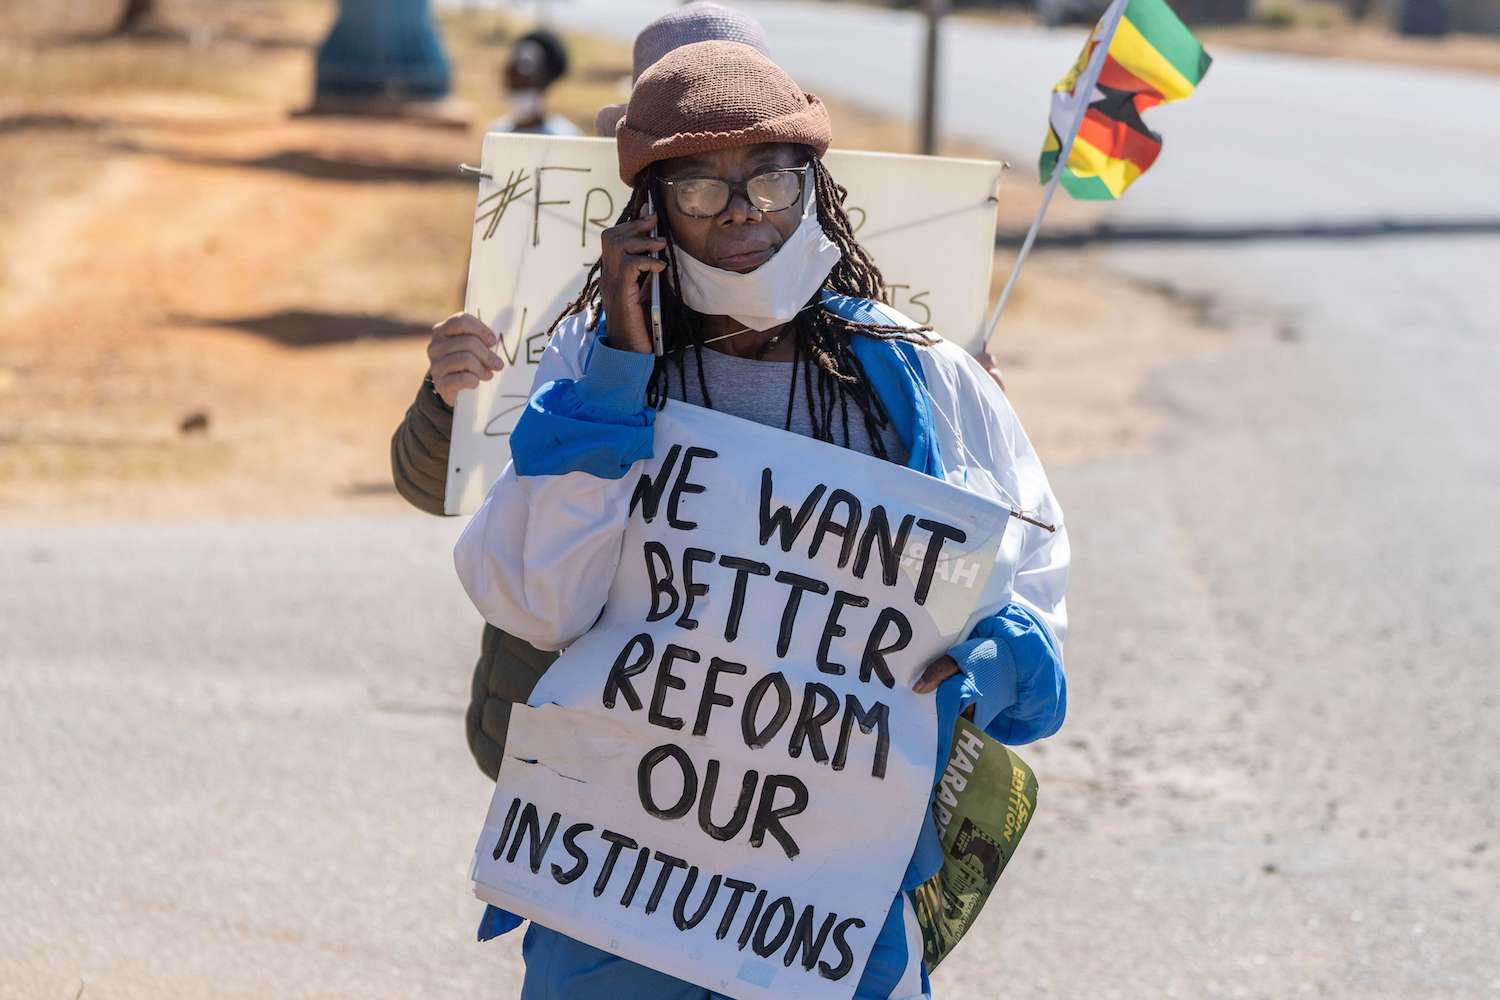 Zimbabwe Cracks Down on Protests as Economy Crumbles